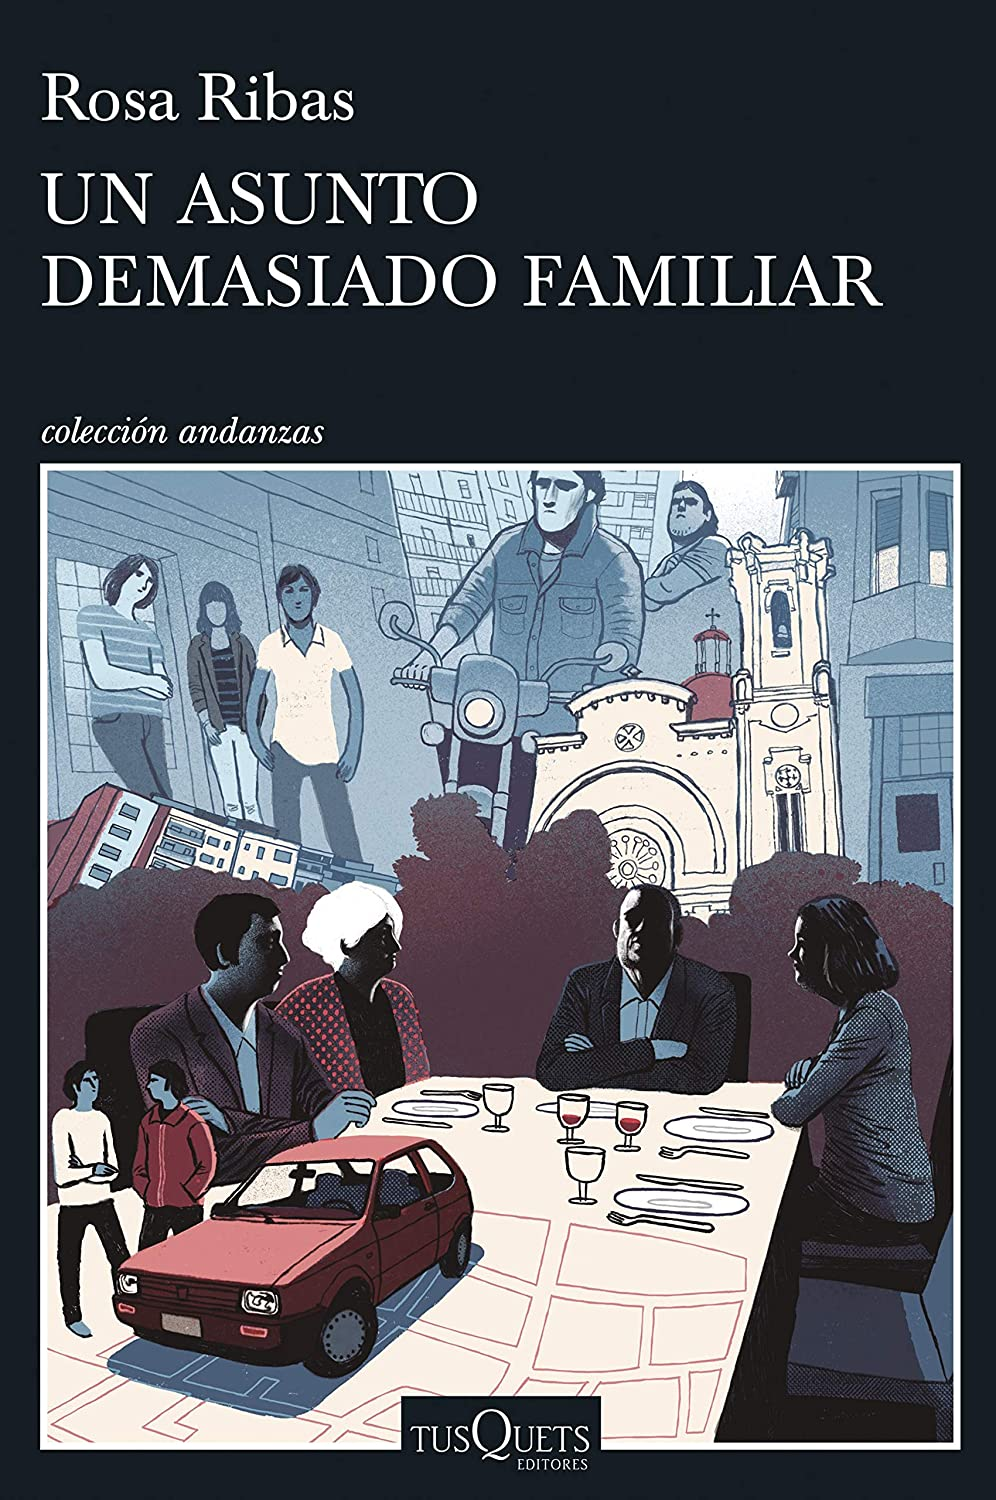 Un asunto demasiado familiar eBook: Ribas, Rosa: Amazon.es: Tienda ...